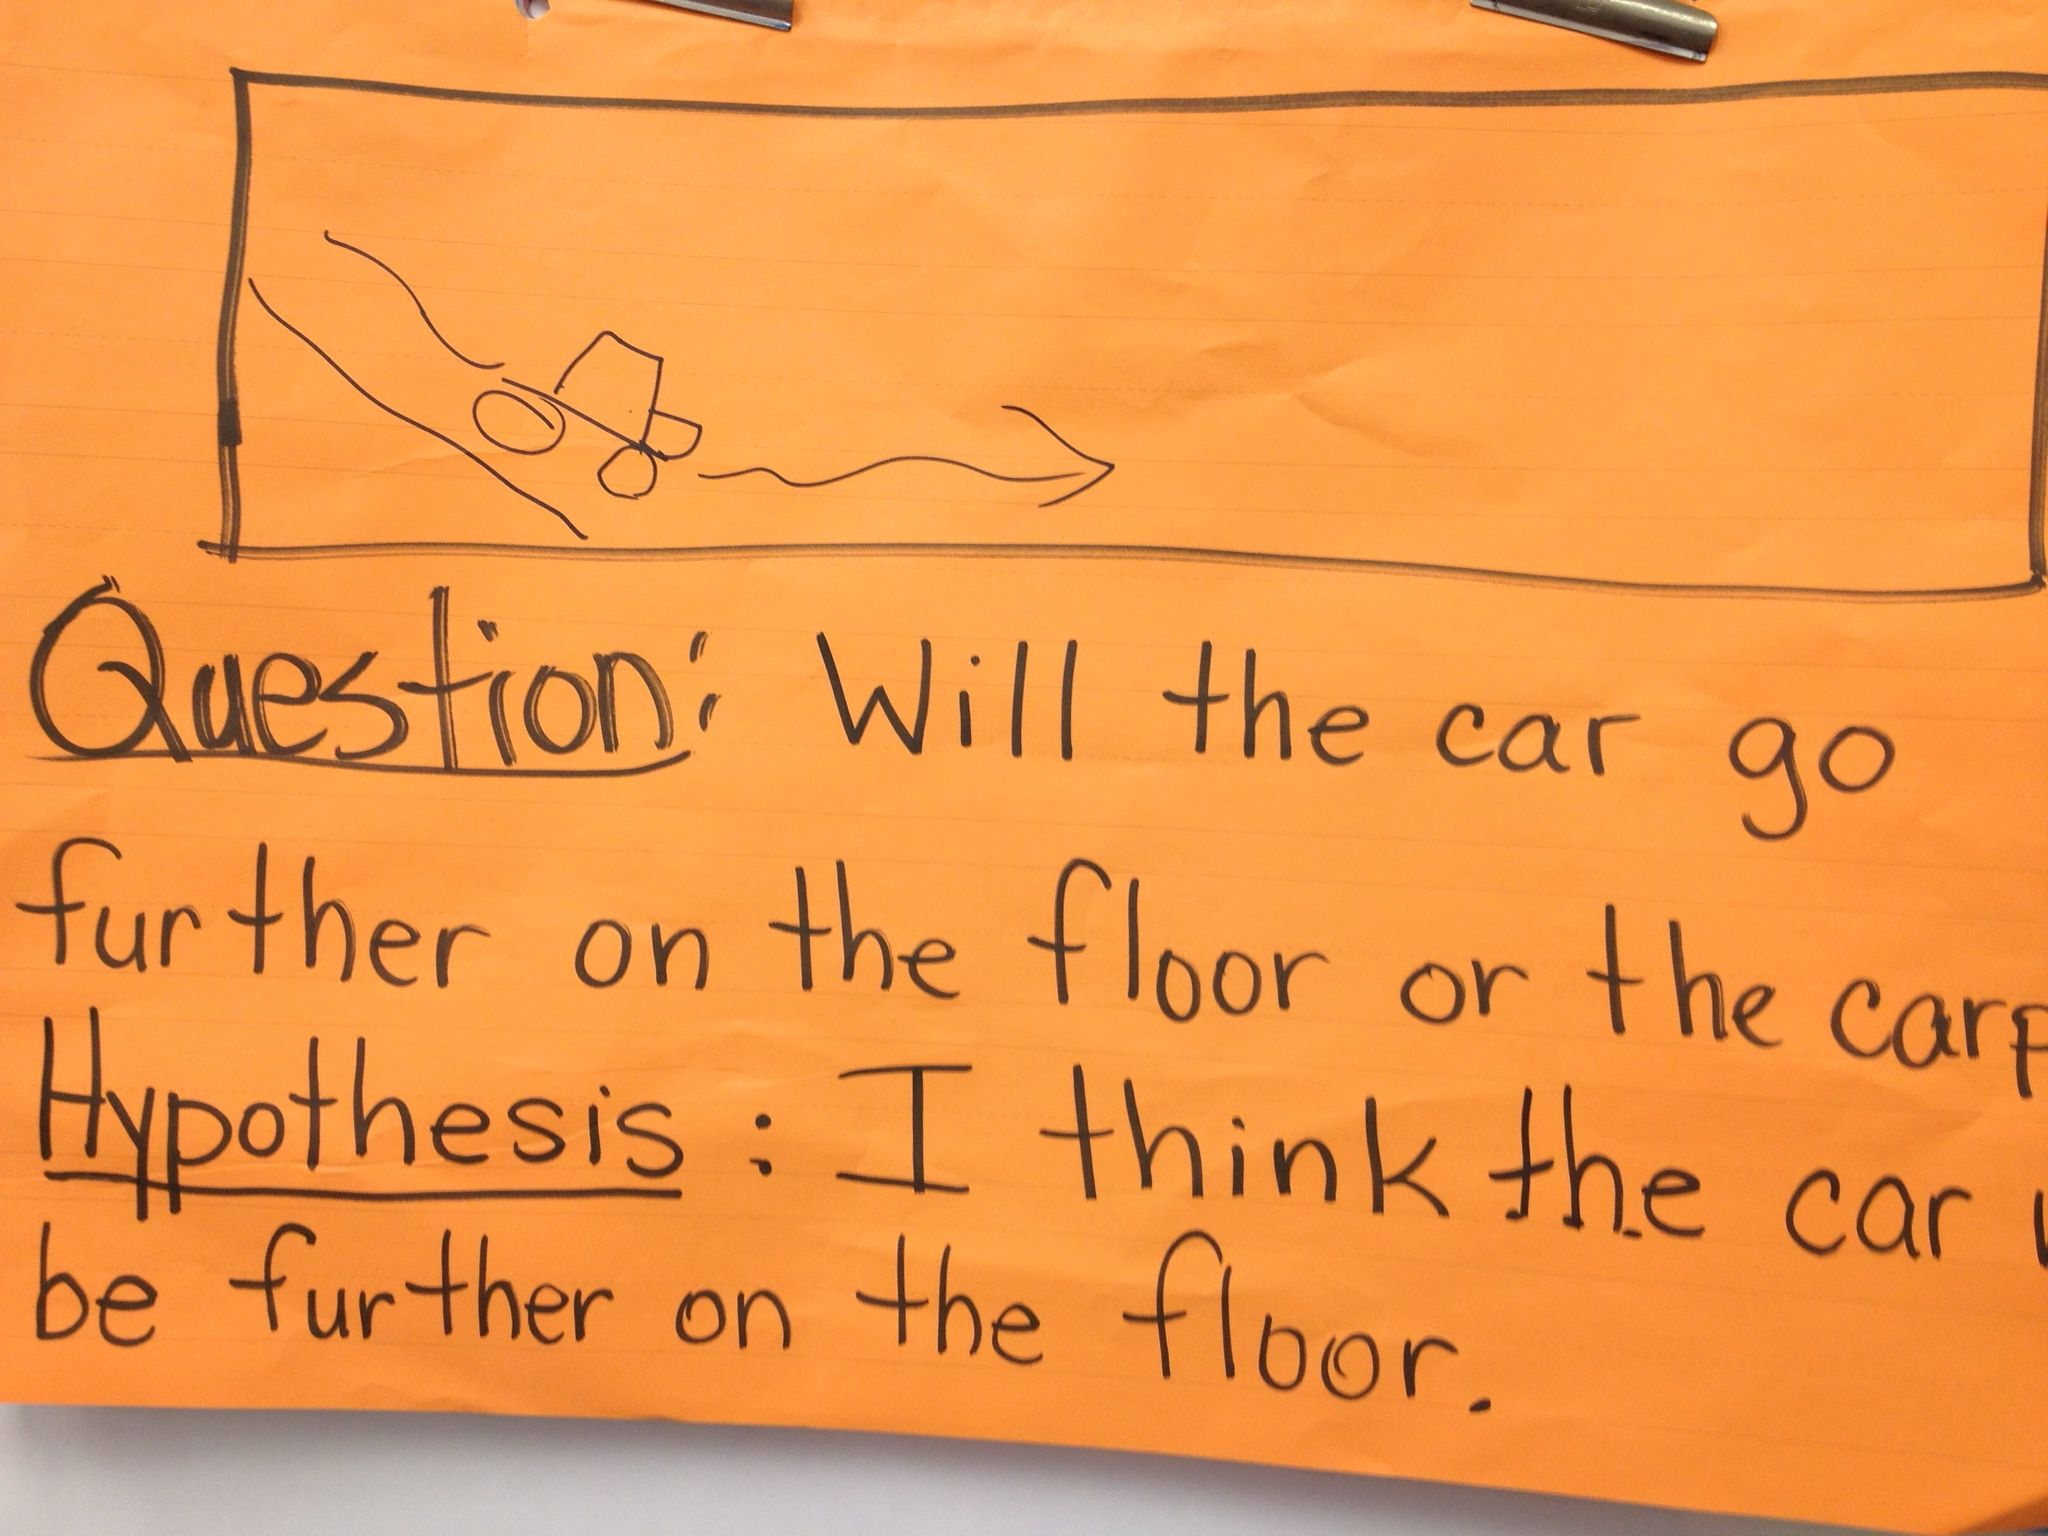 Example of a question and hypothesis for scientific information